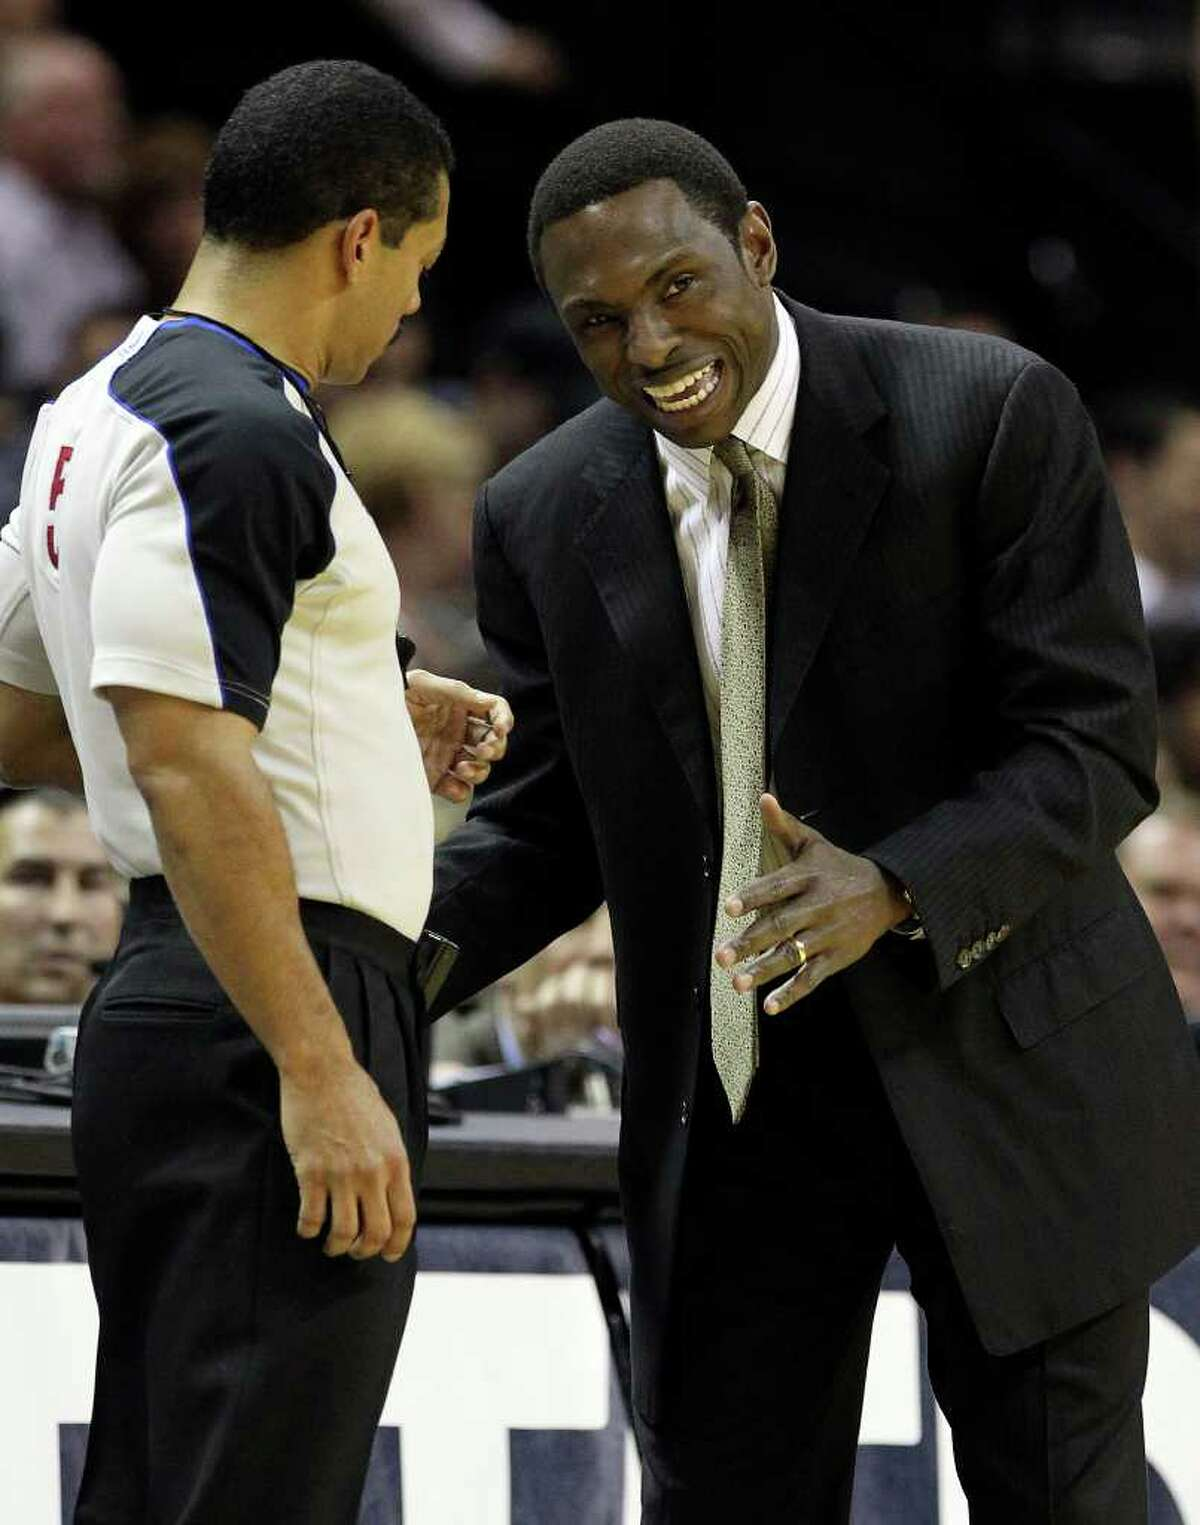 New Jersey Nets coach Avery Johnson (right) debates a call with official Bill Kennedy in the first half at the AT&T Center on Friday, Feb. 25, 2011. Kin Man Hui/kmhui@express-news.net